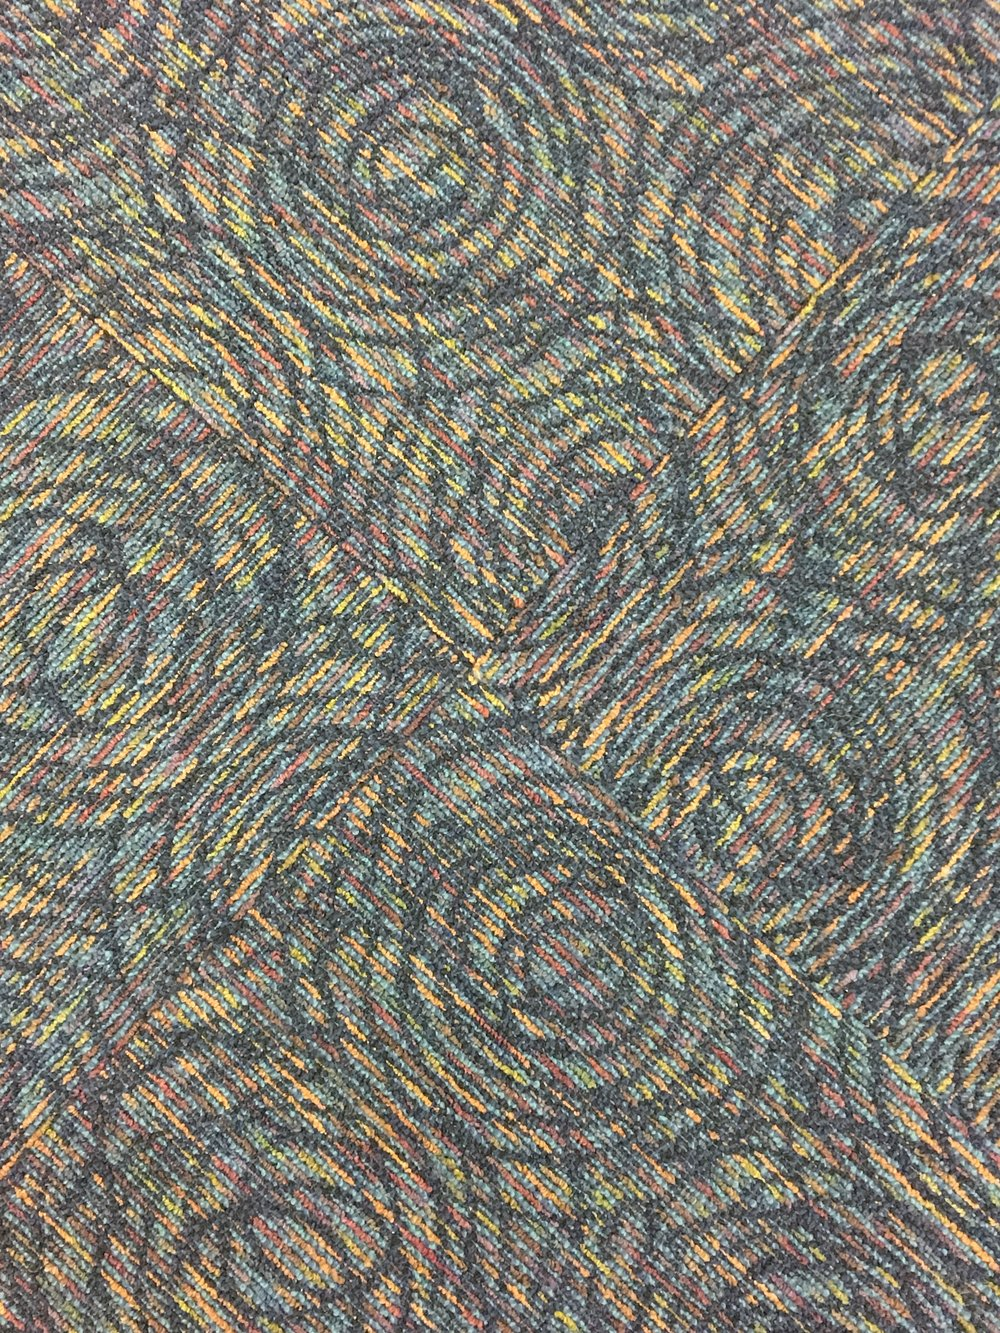 ALONE // Airport Carpet Zine: Photograph of organic carpet pattern at unknown airport